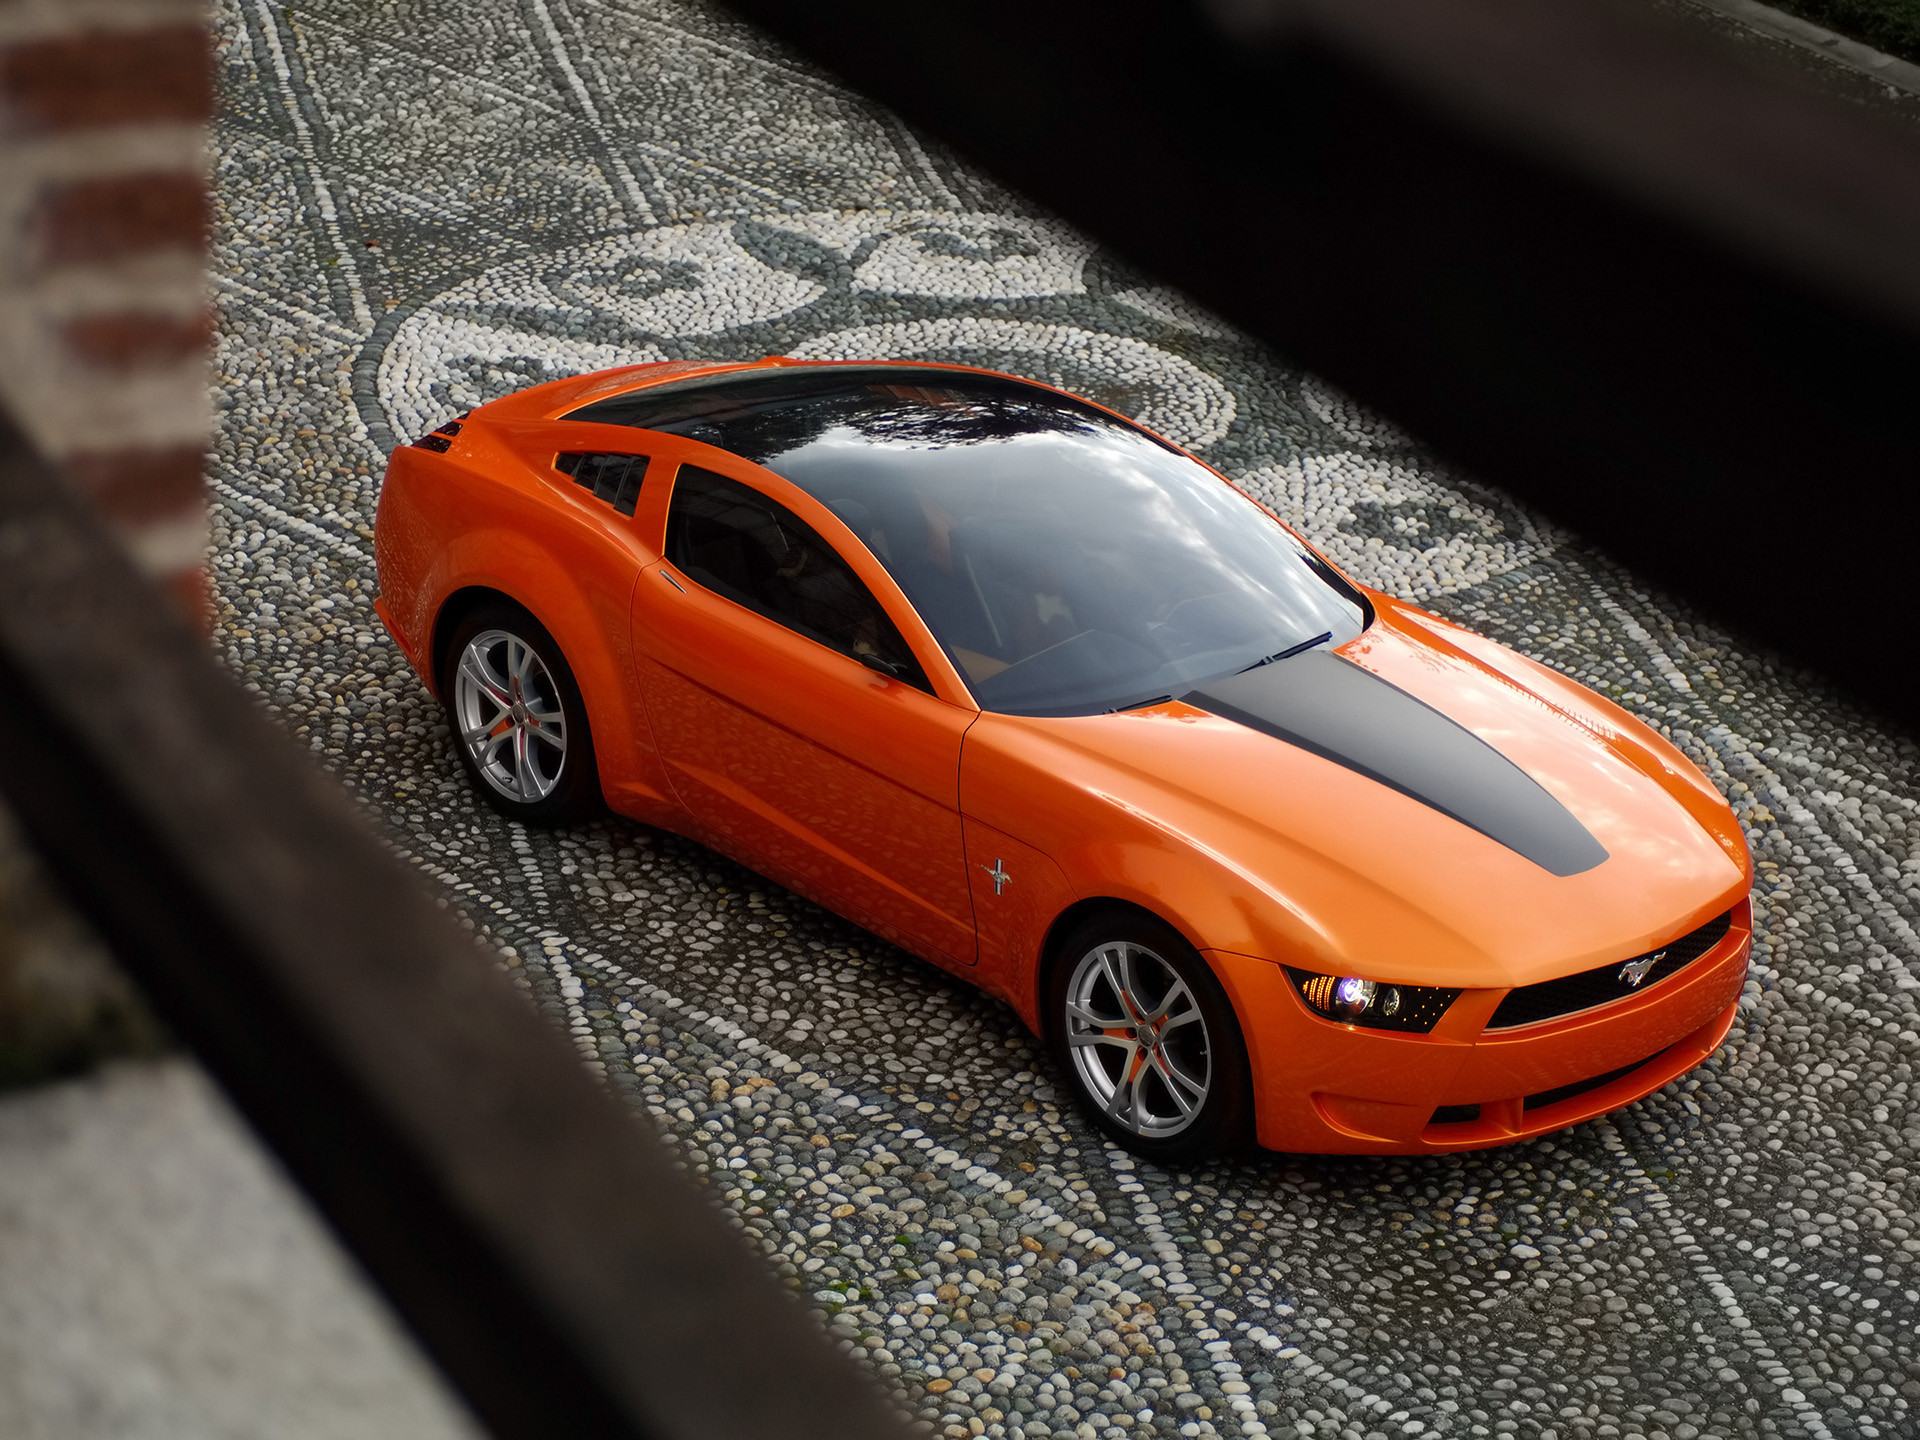 Italdesign Giugiaro Ford Mustang Concept photo 39934